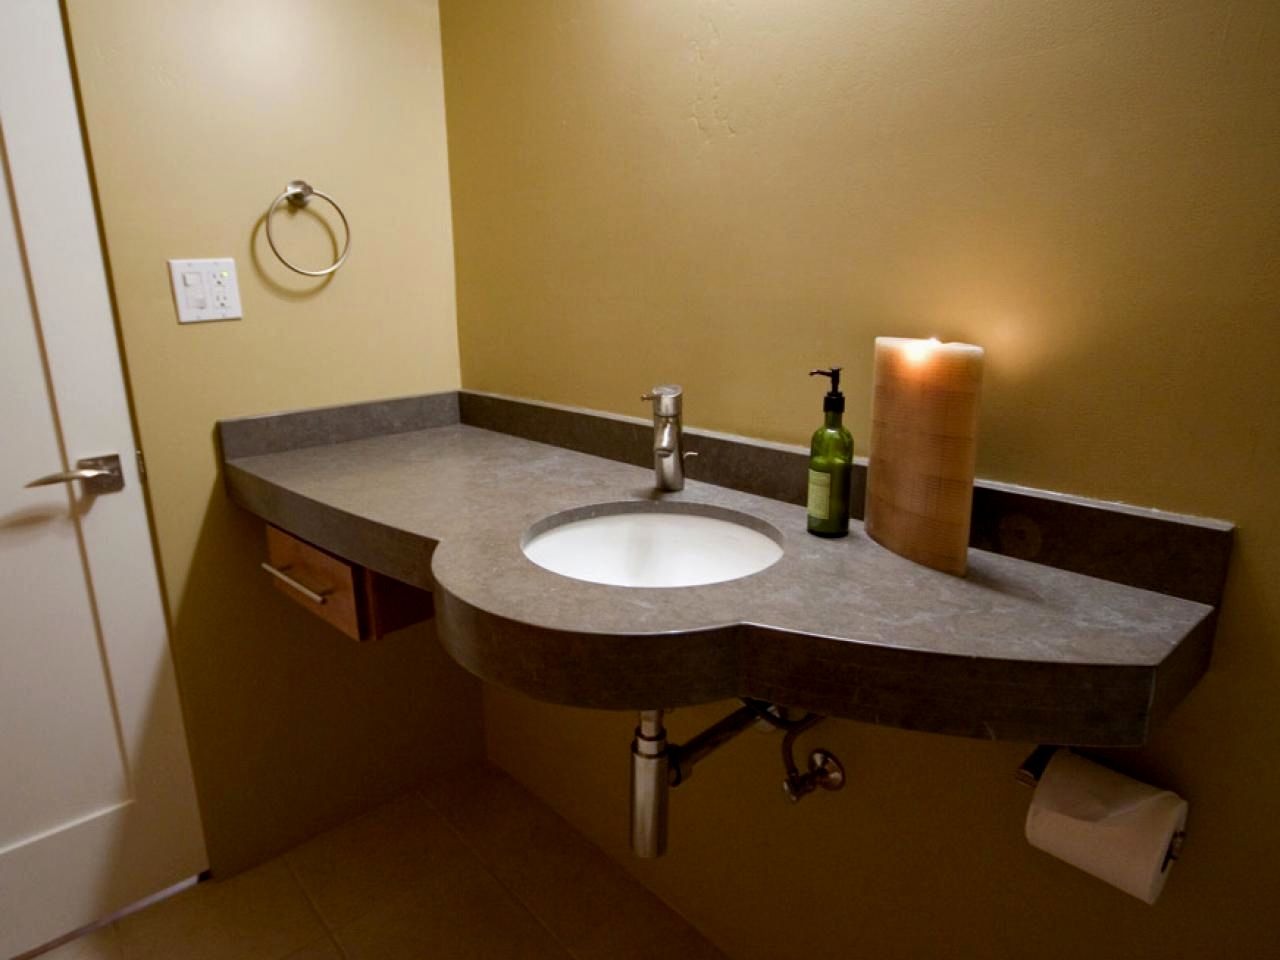 new how to install a bathroom faucet image-Best How to Install A Bathroom Faucet Photo